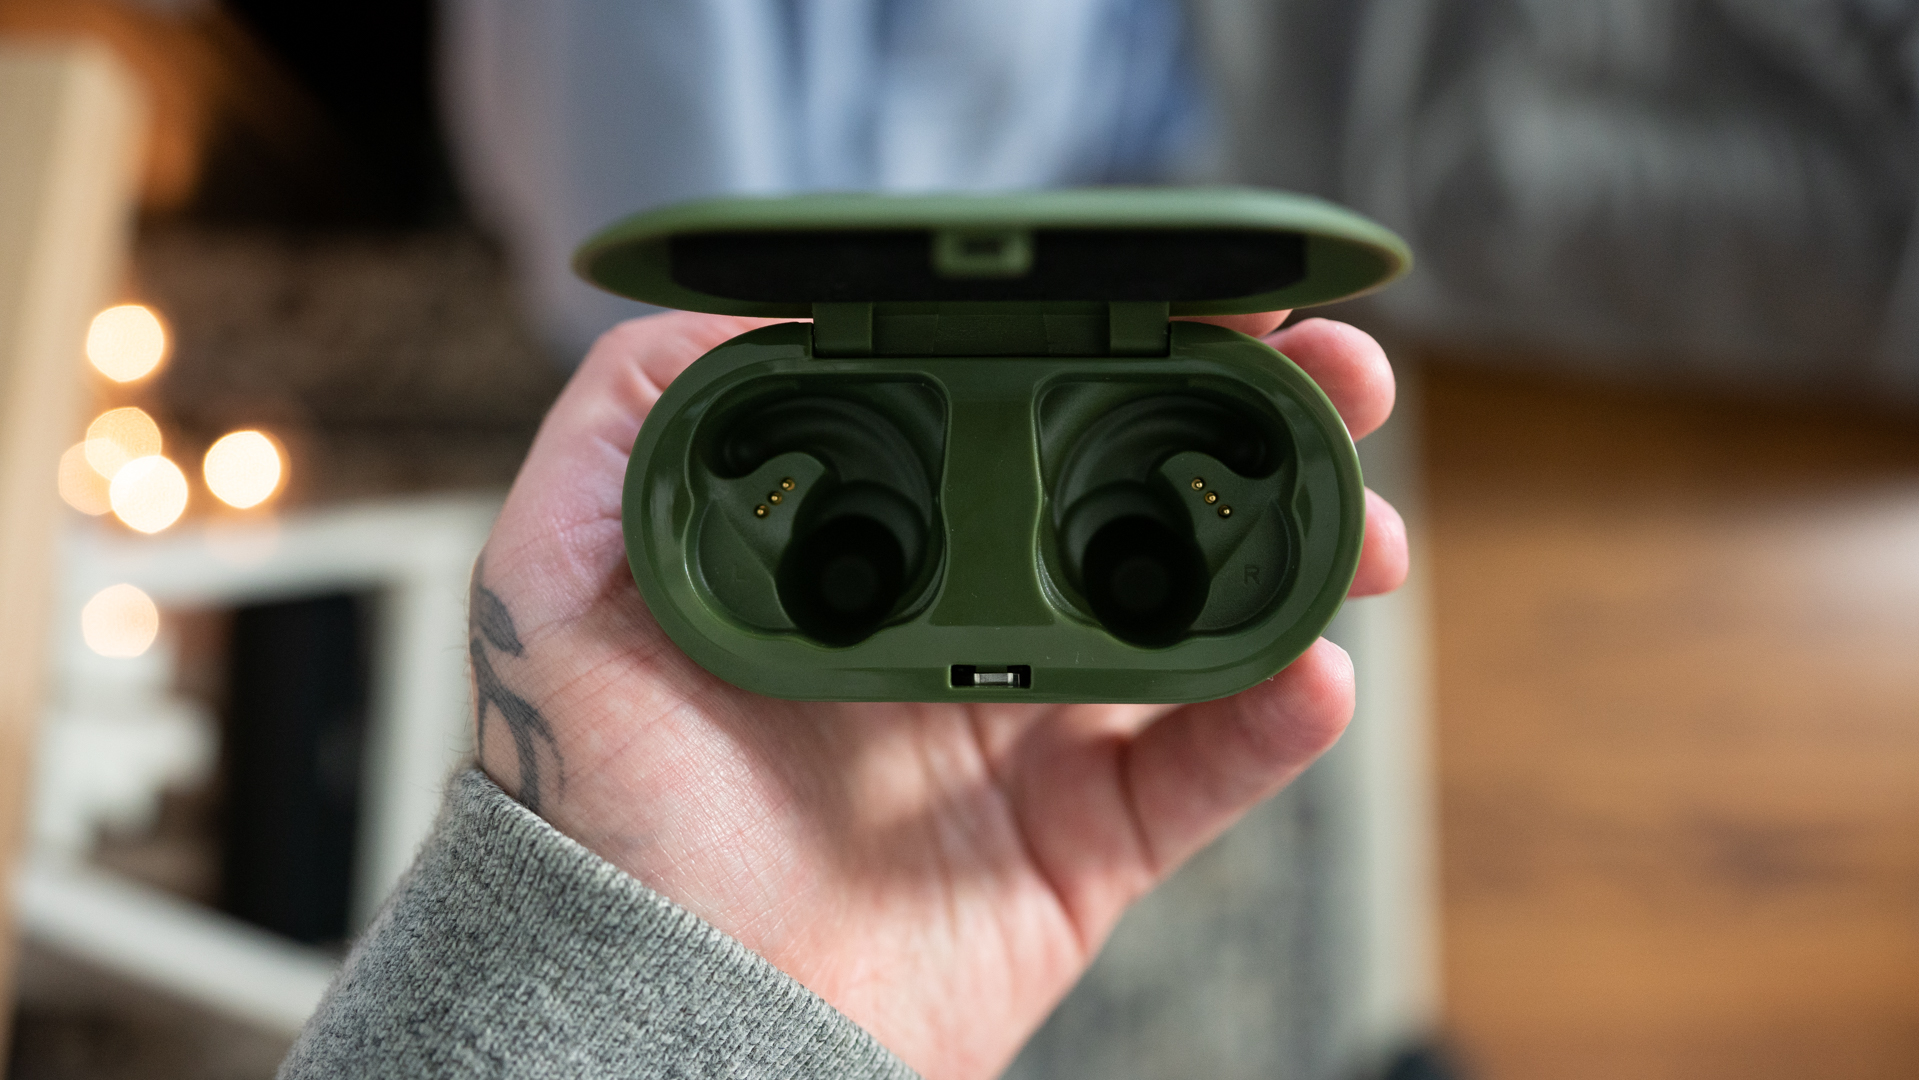 c7d8ccfff01 The charging case of the Skullcandy Push true wireless earbuds in hand.